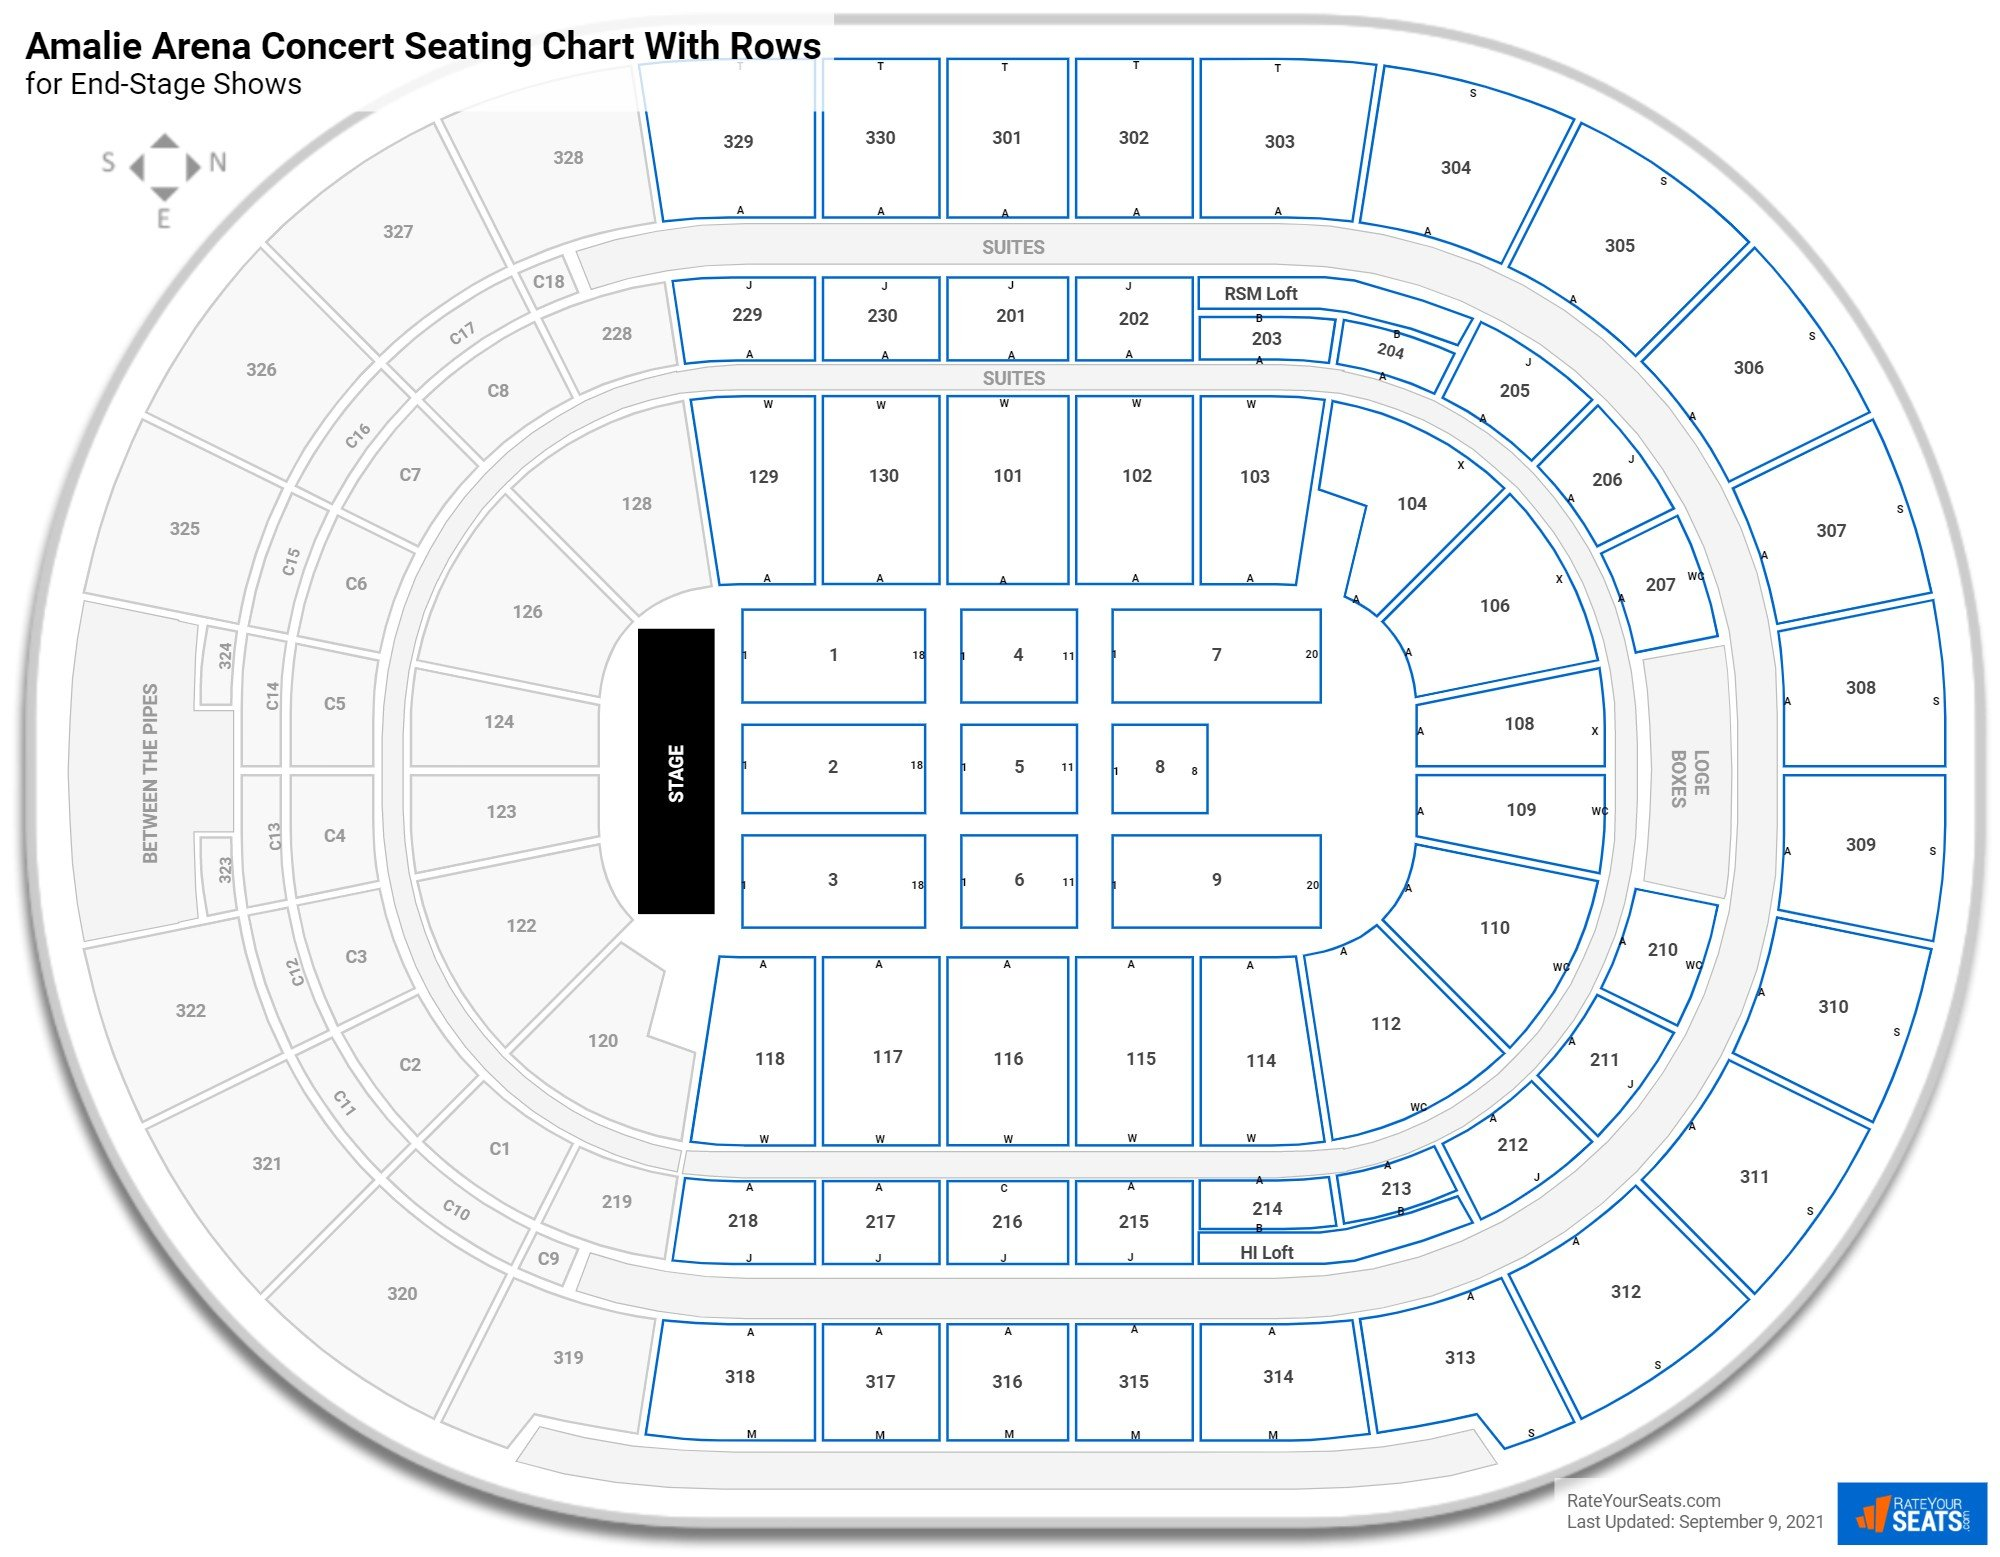 Amalie Arena seating chart with rows concert